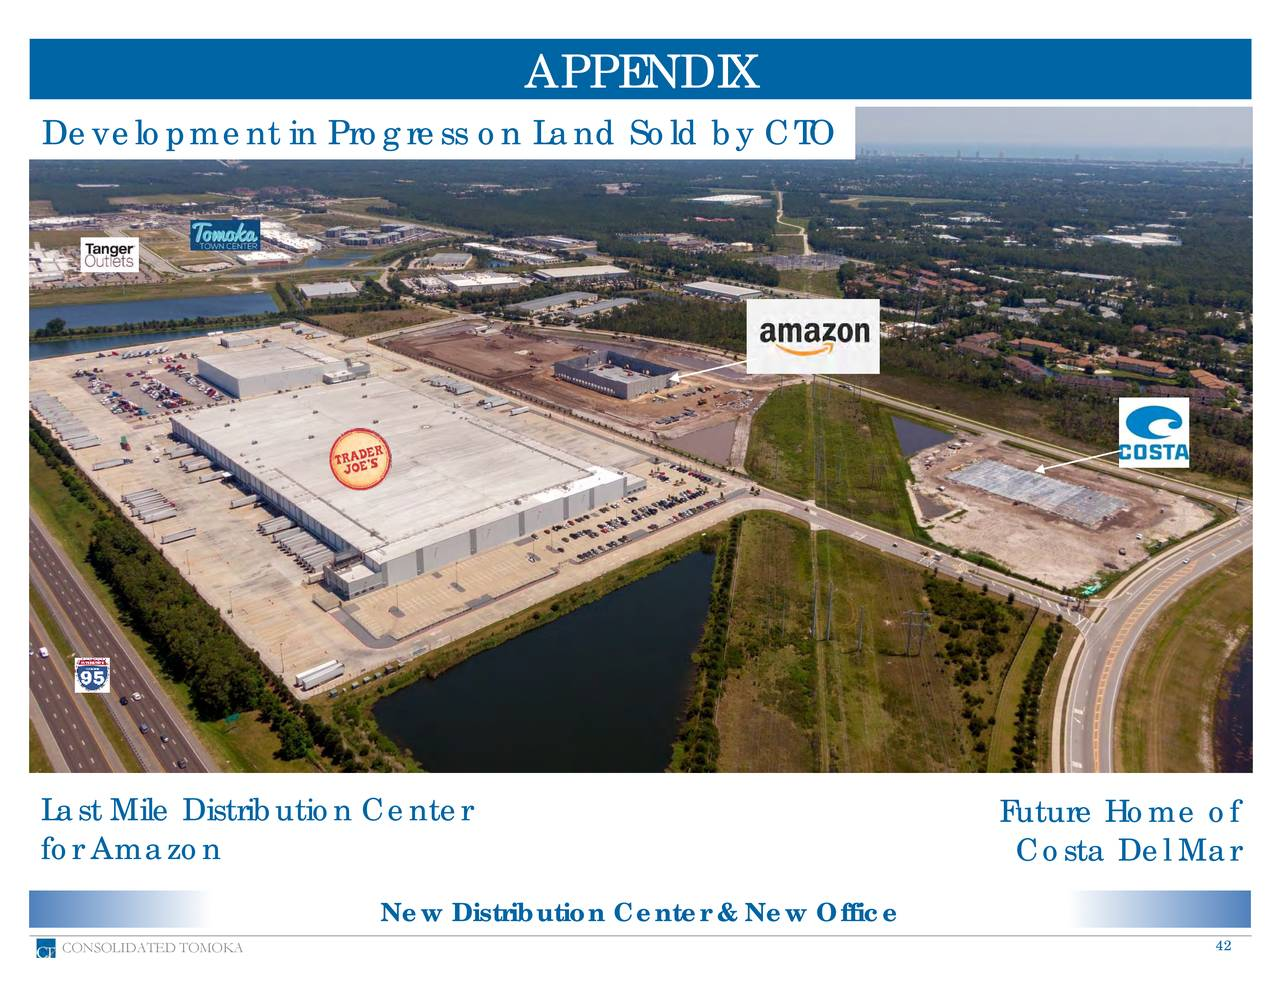 Development in Progress on Land Sold by CTO Last Mile Distribution Center Future Home of for Amazon Costa Del Mar New Distribution Center & New Office CONSOLIDATED TOMOKA 42